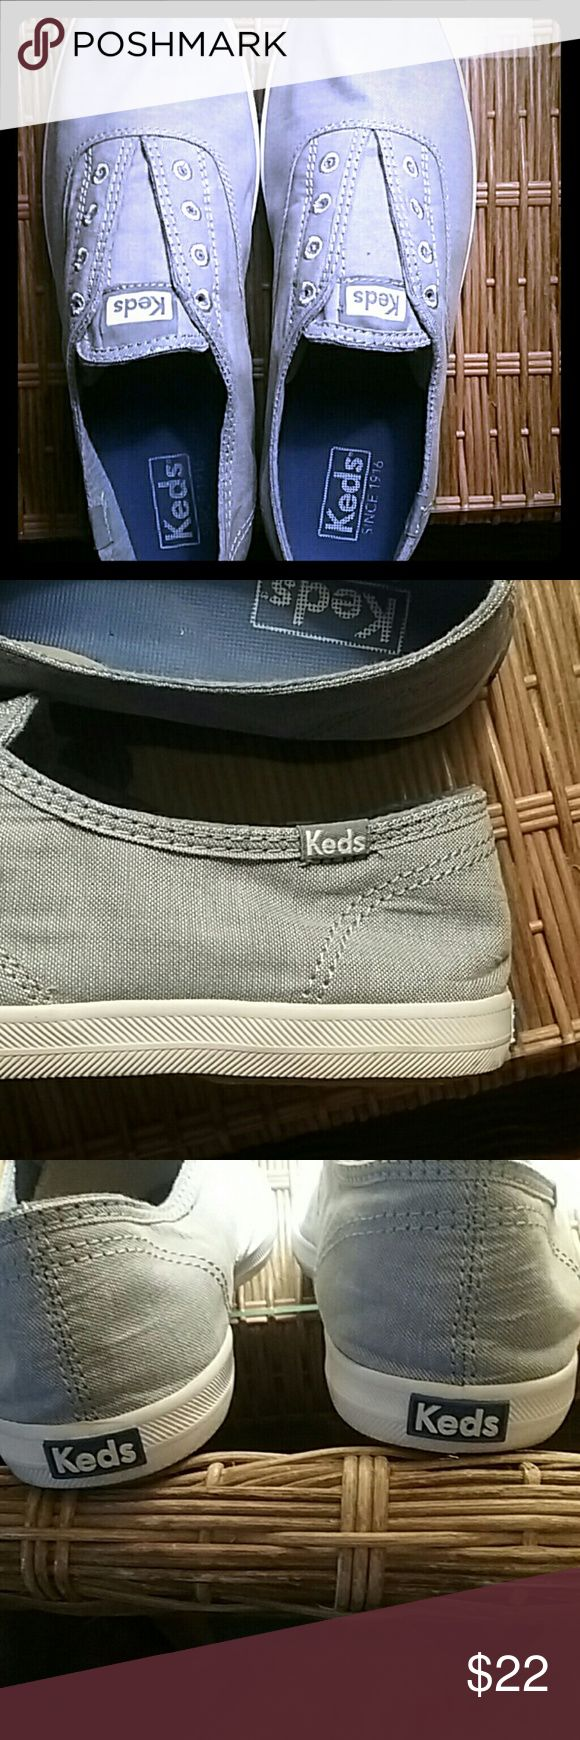 Keds Women's Chillax  Laceless Slip ons Super comfortable slip on Chambray  material light sky blue. WORN ONCE  outside for less than 2 hours.  Clean and pristine! Keds Shoes Sneakers